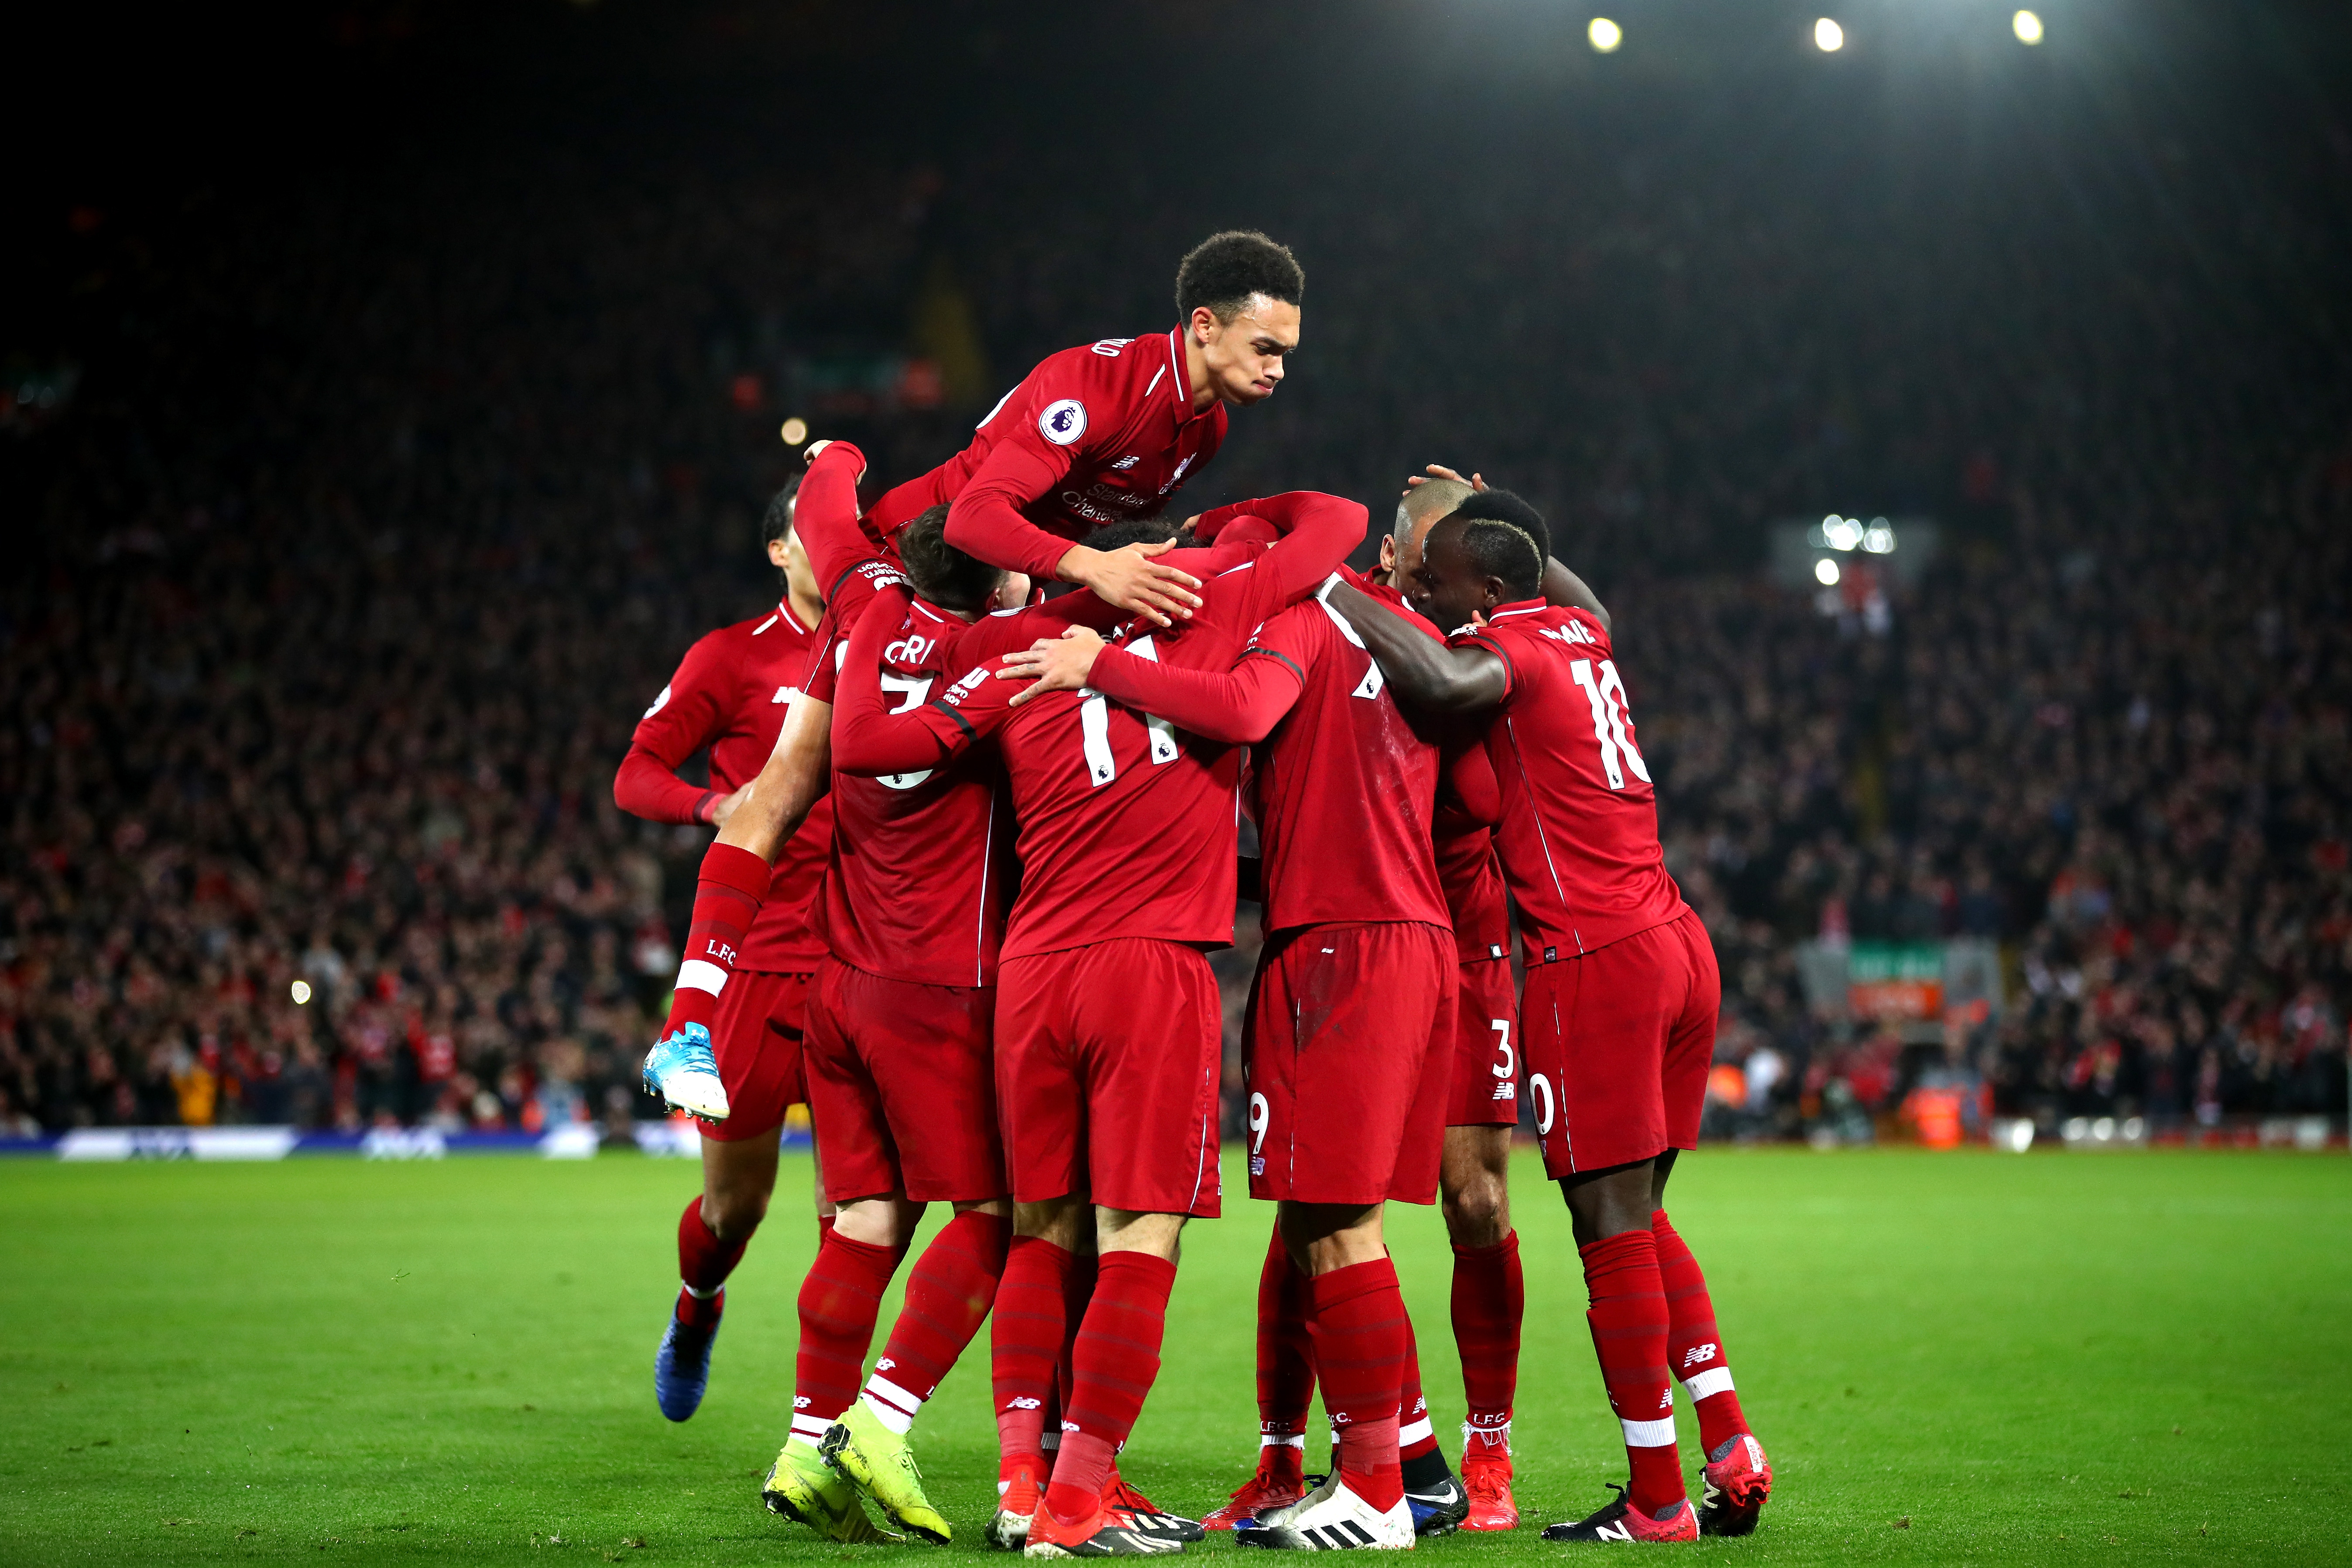 Liverpool players celebrate during their 5-1 win over Arsenal (Clive Brunskill/Getty Images)